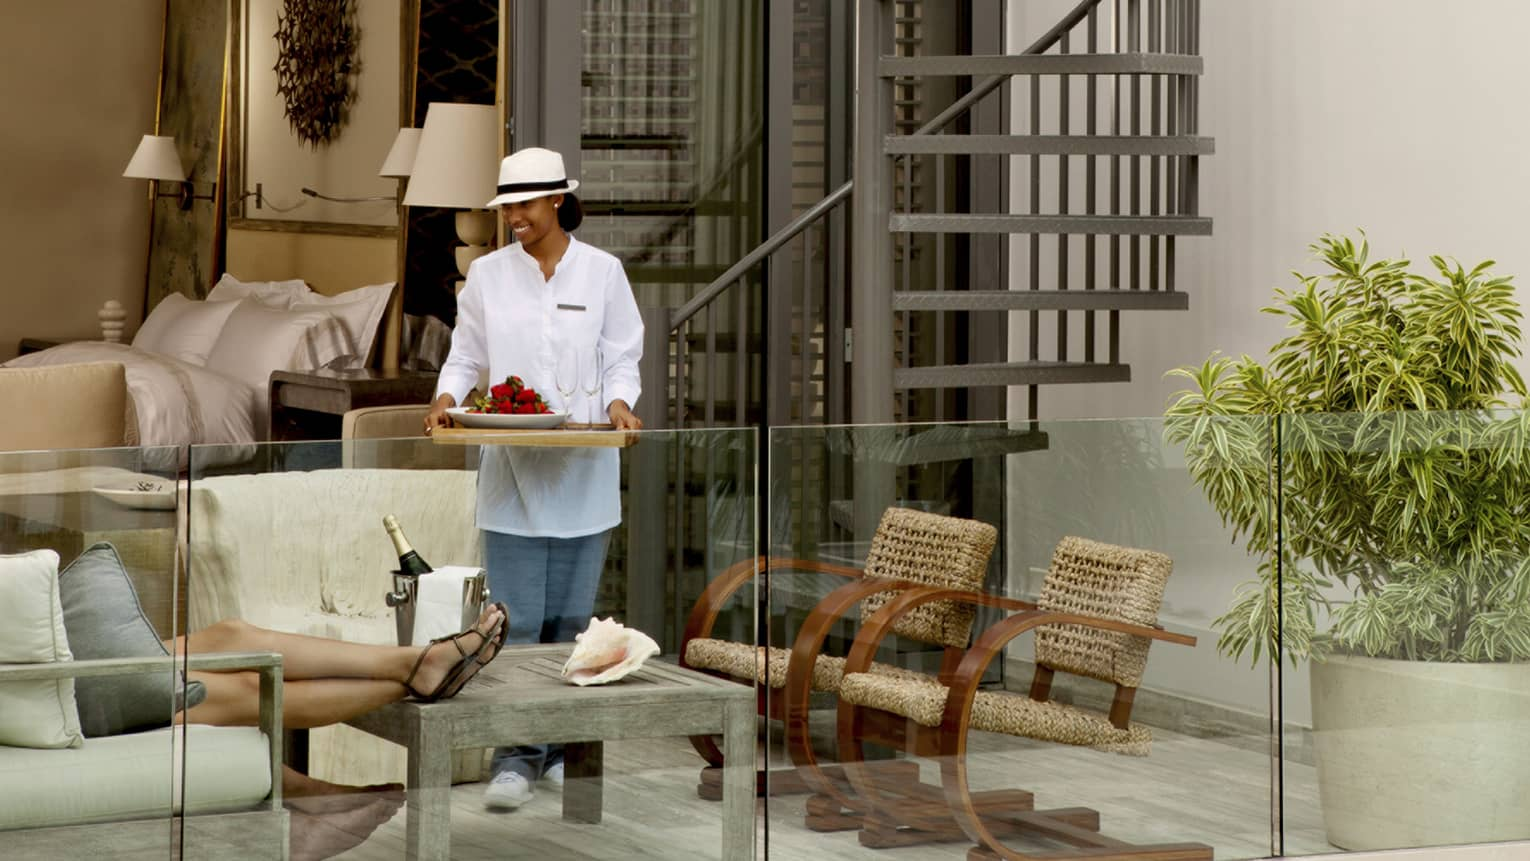 Server in white uniform and hat brings tray of fresh fruit, champagne glasses to guests on private villa patio